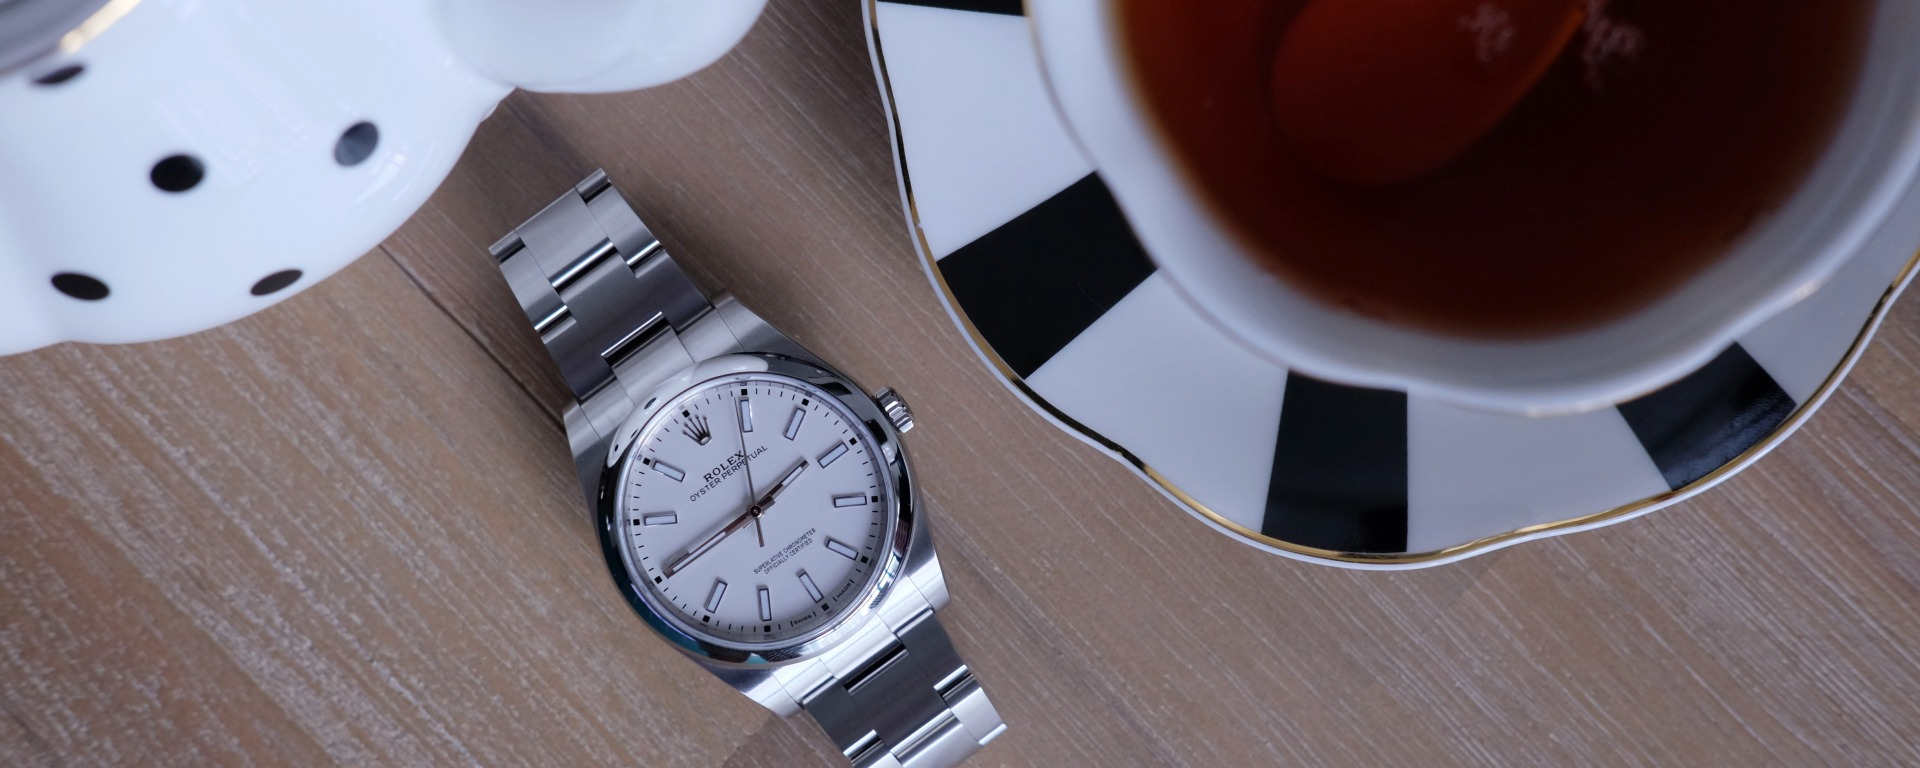 902bc5306d3 Rolex Oyster Perpetual 39